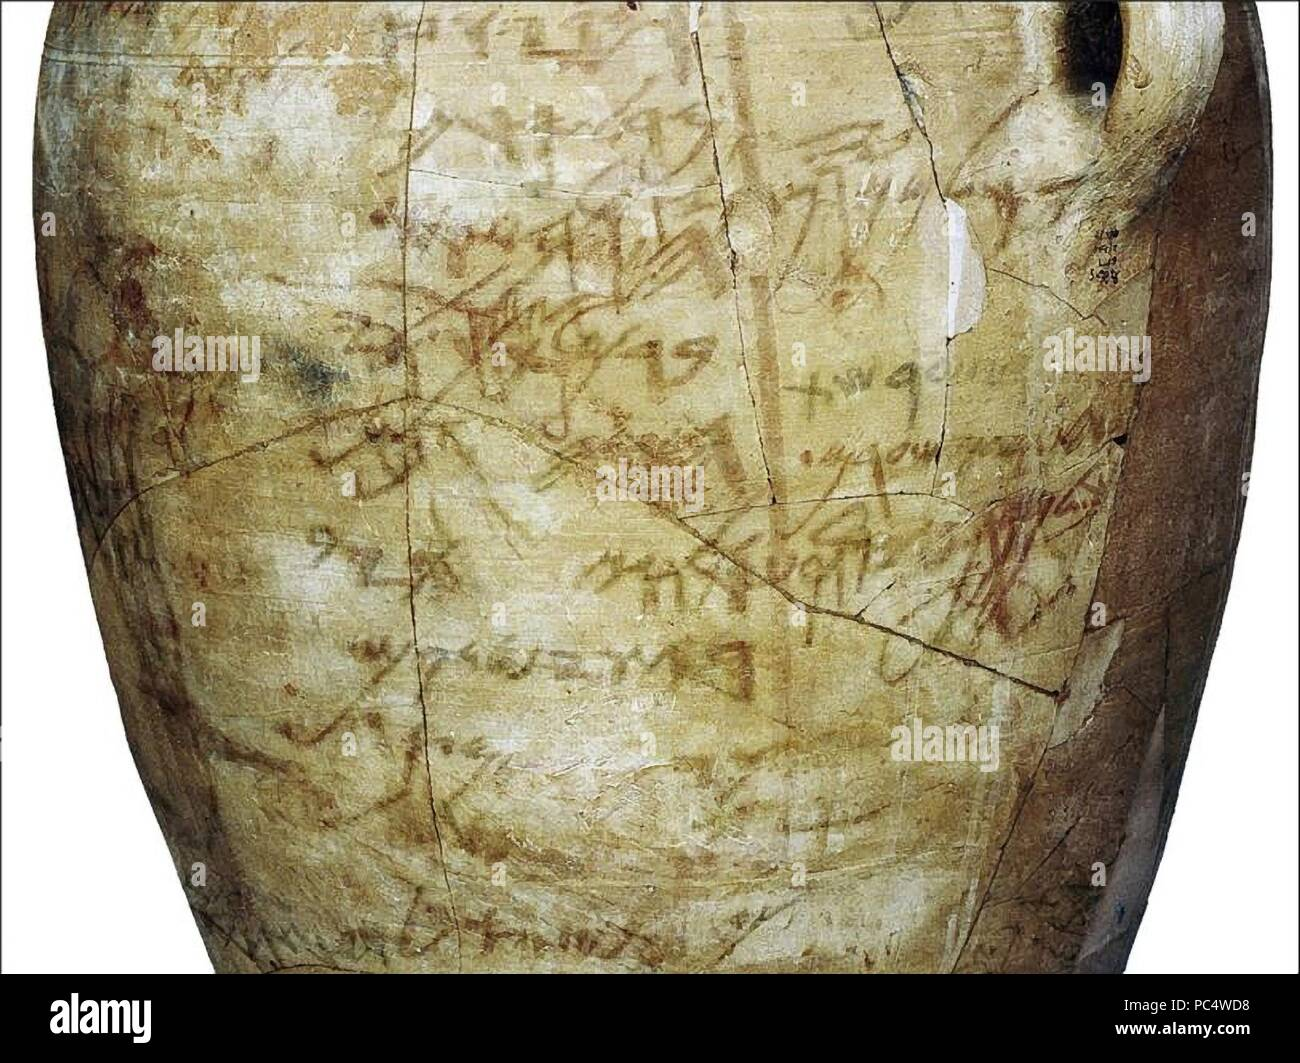 6269. Hebrew alphabet inscribed on a ceramic pot dating c. 8th. C. BC from Kuntilet Ajrud, an Israelite outpost in southern Negev. - Stock Image